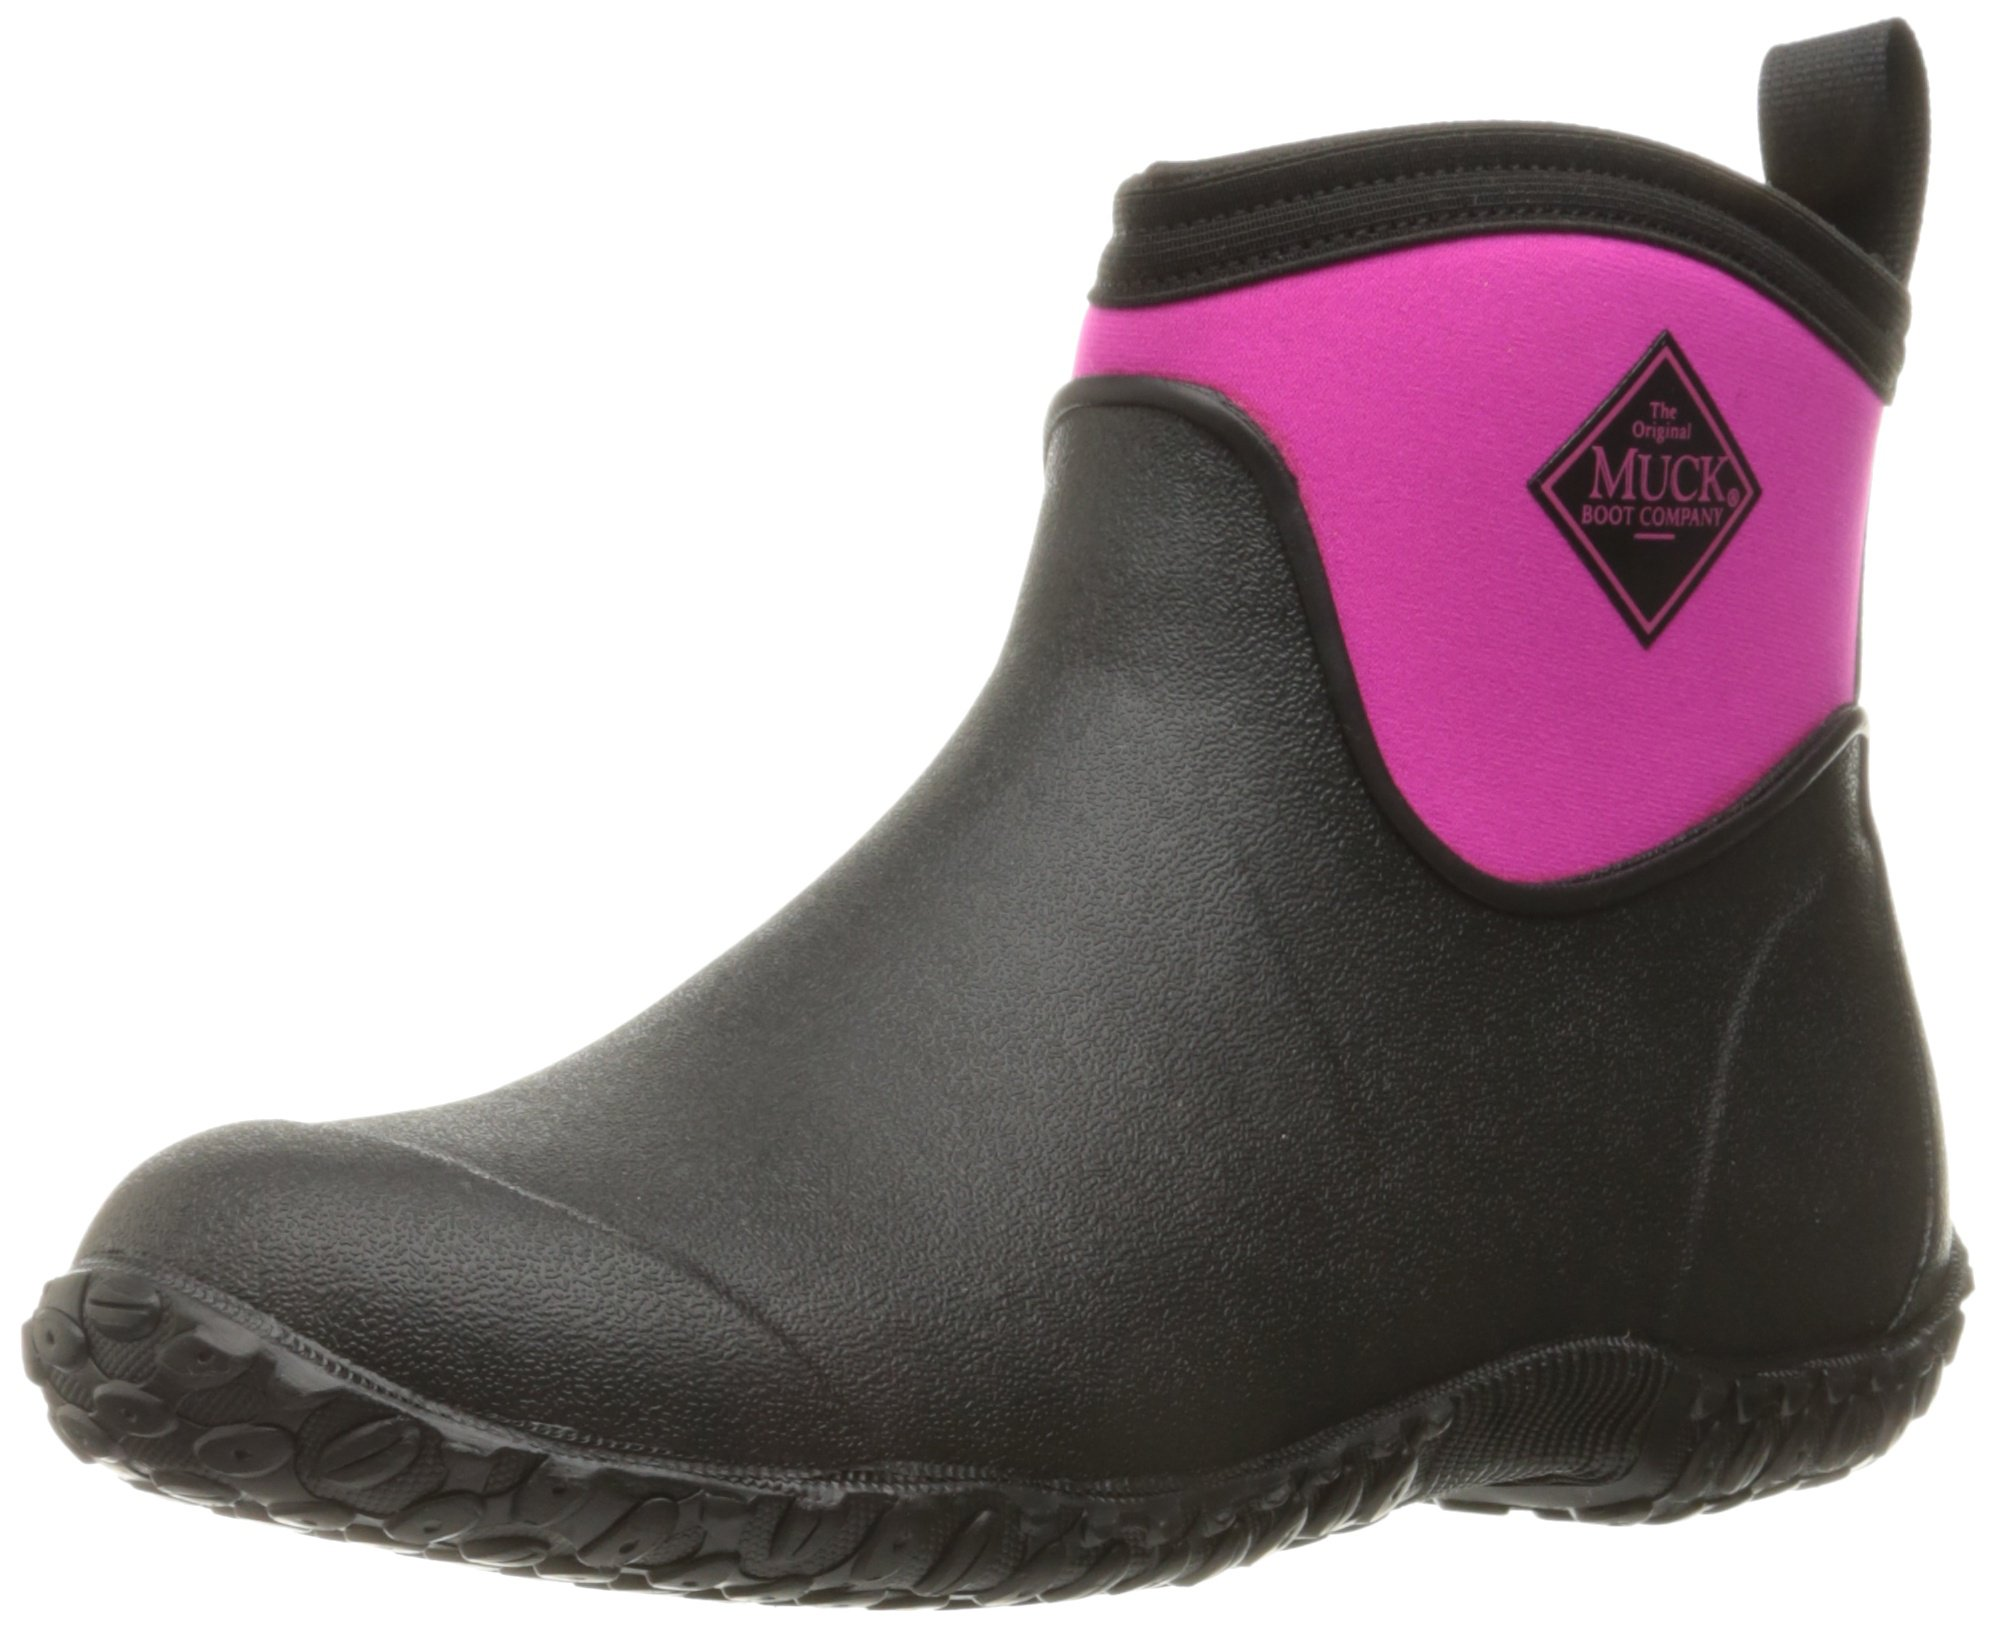 Muck Boot Women's Muckster 2 Ankle Snow Boot, Black/Pink, 8 US/8 M US